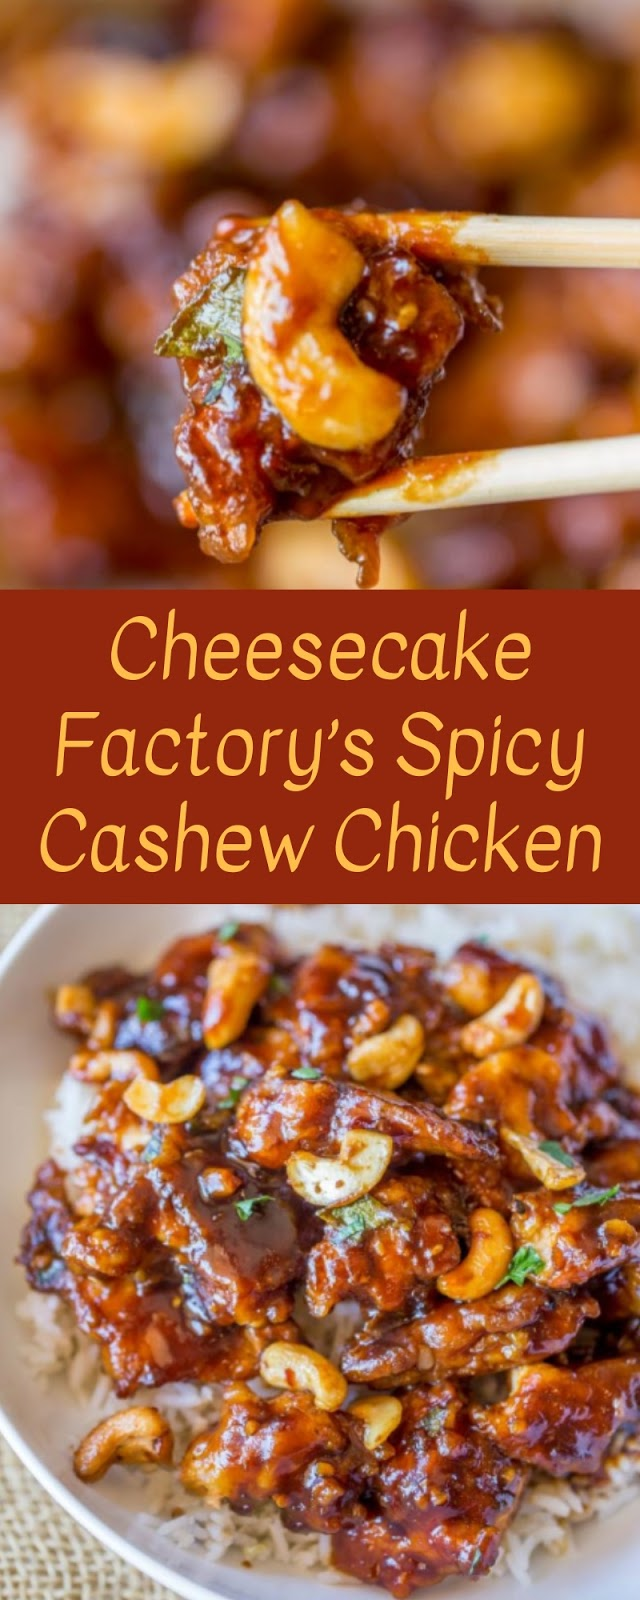 Cheesecake Factory's Spicy Cashew Chicken